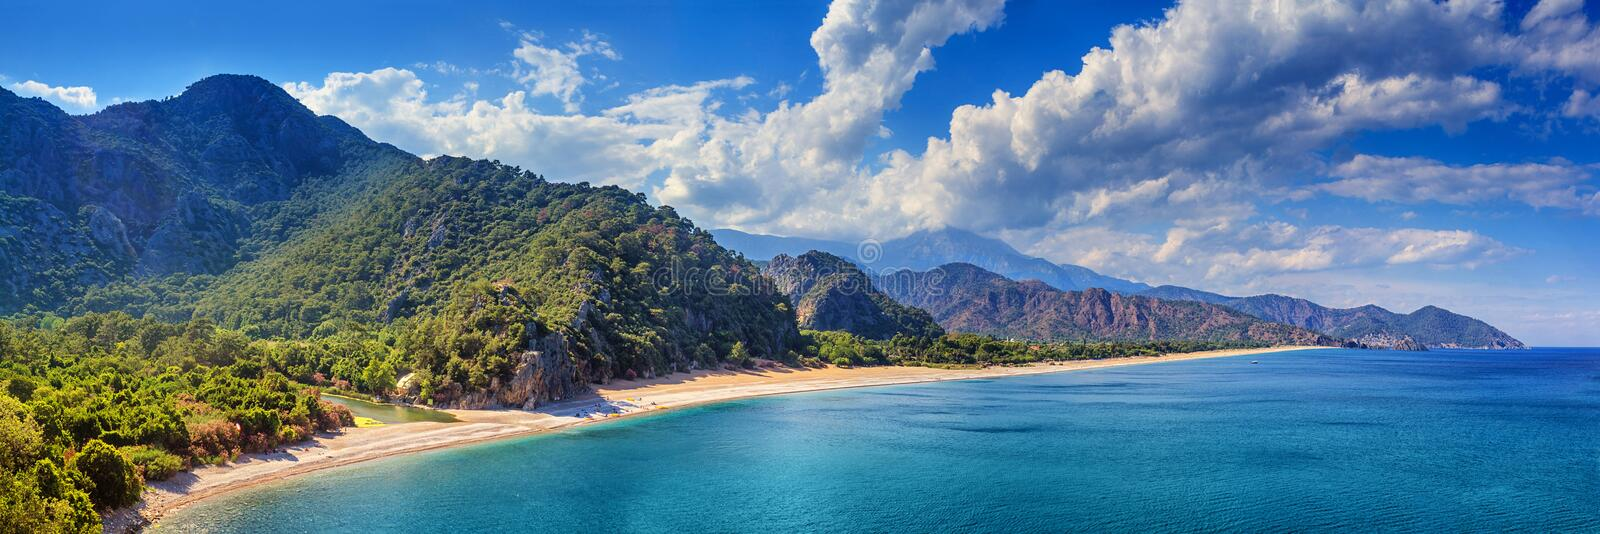 Summer mediterranean coastal landscape - view of the Cirali Olympos Beach, near the Turkish village of Cıralı. Antalya Province in Turkey stock photography